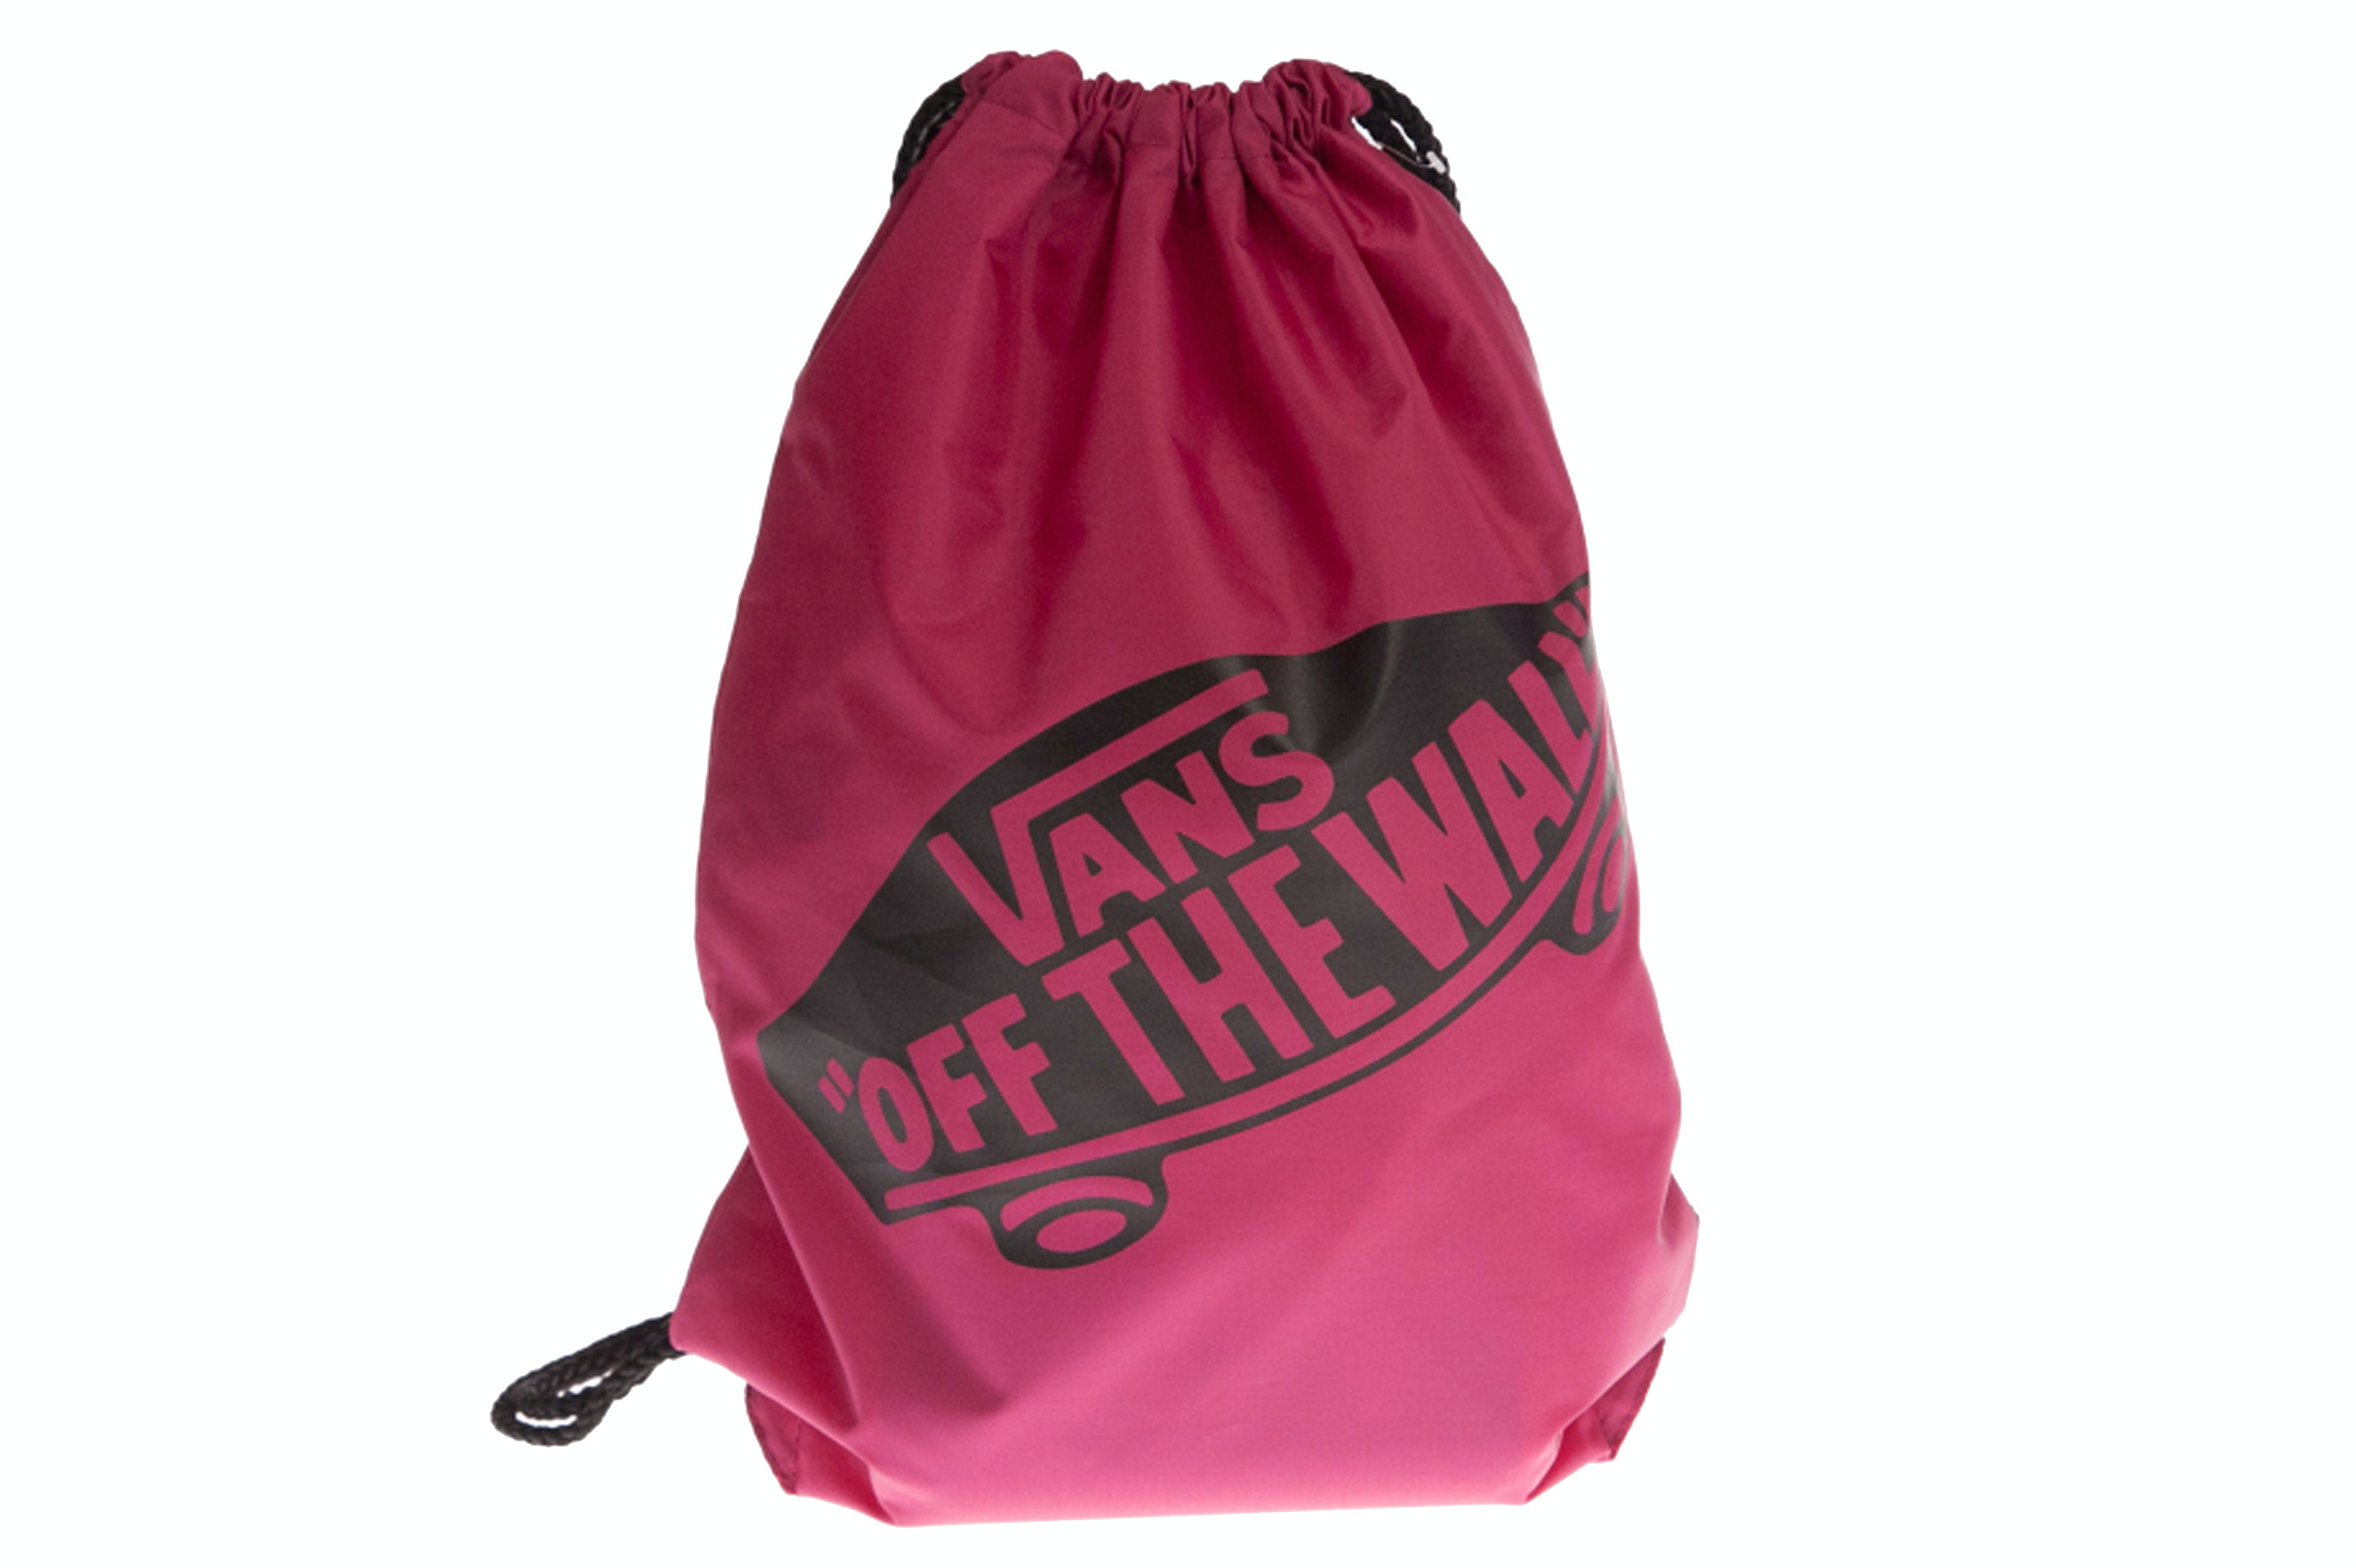 Vans BENCHED BAG SUFSQ2 VN000SUFSQ21